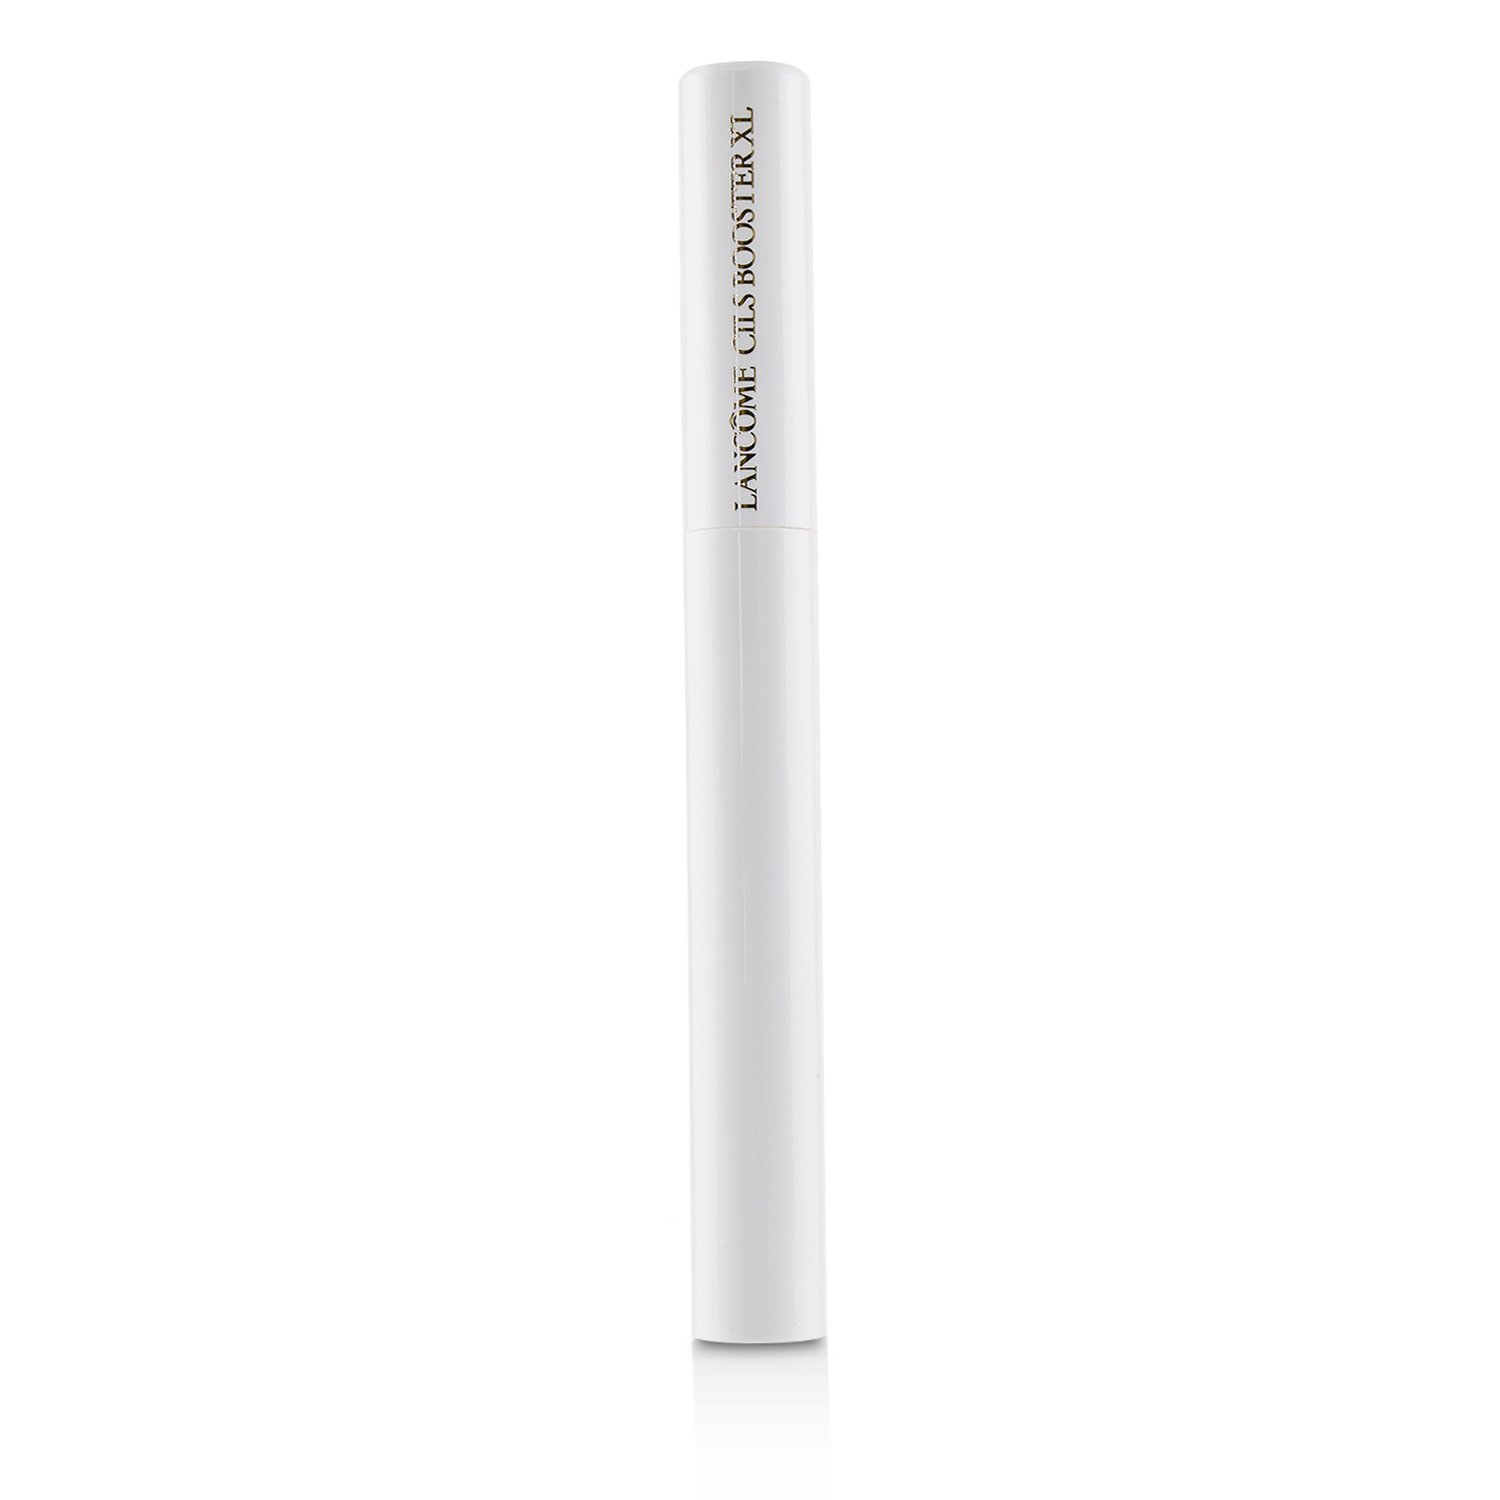 Lancome 蘭蔻 超強睫毛增長護底膏 Cils Booster XL Super Enhancing Mascara Base 5.5ml/0.18oz